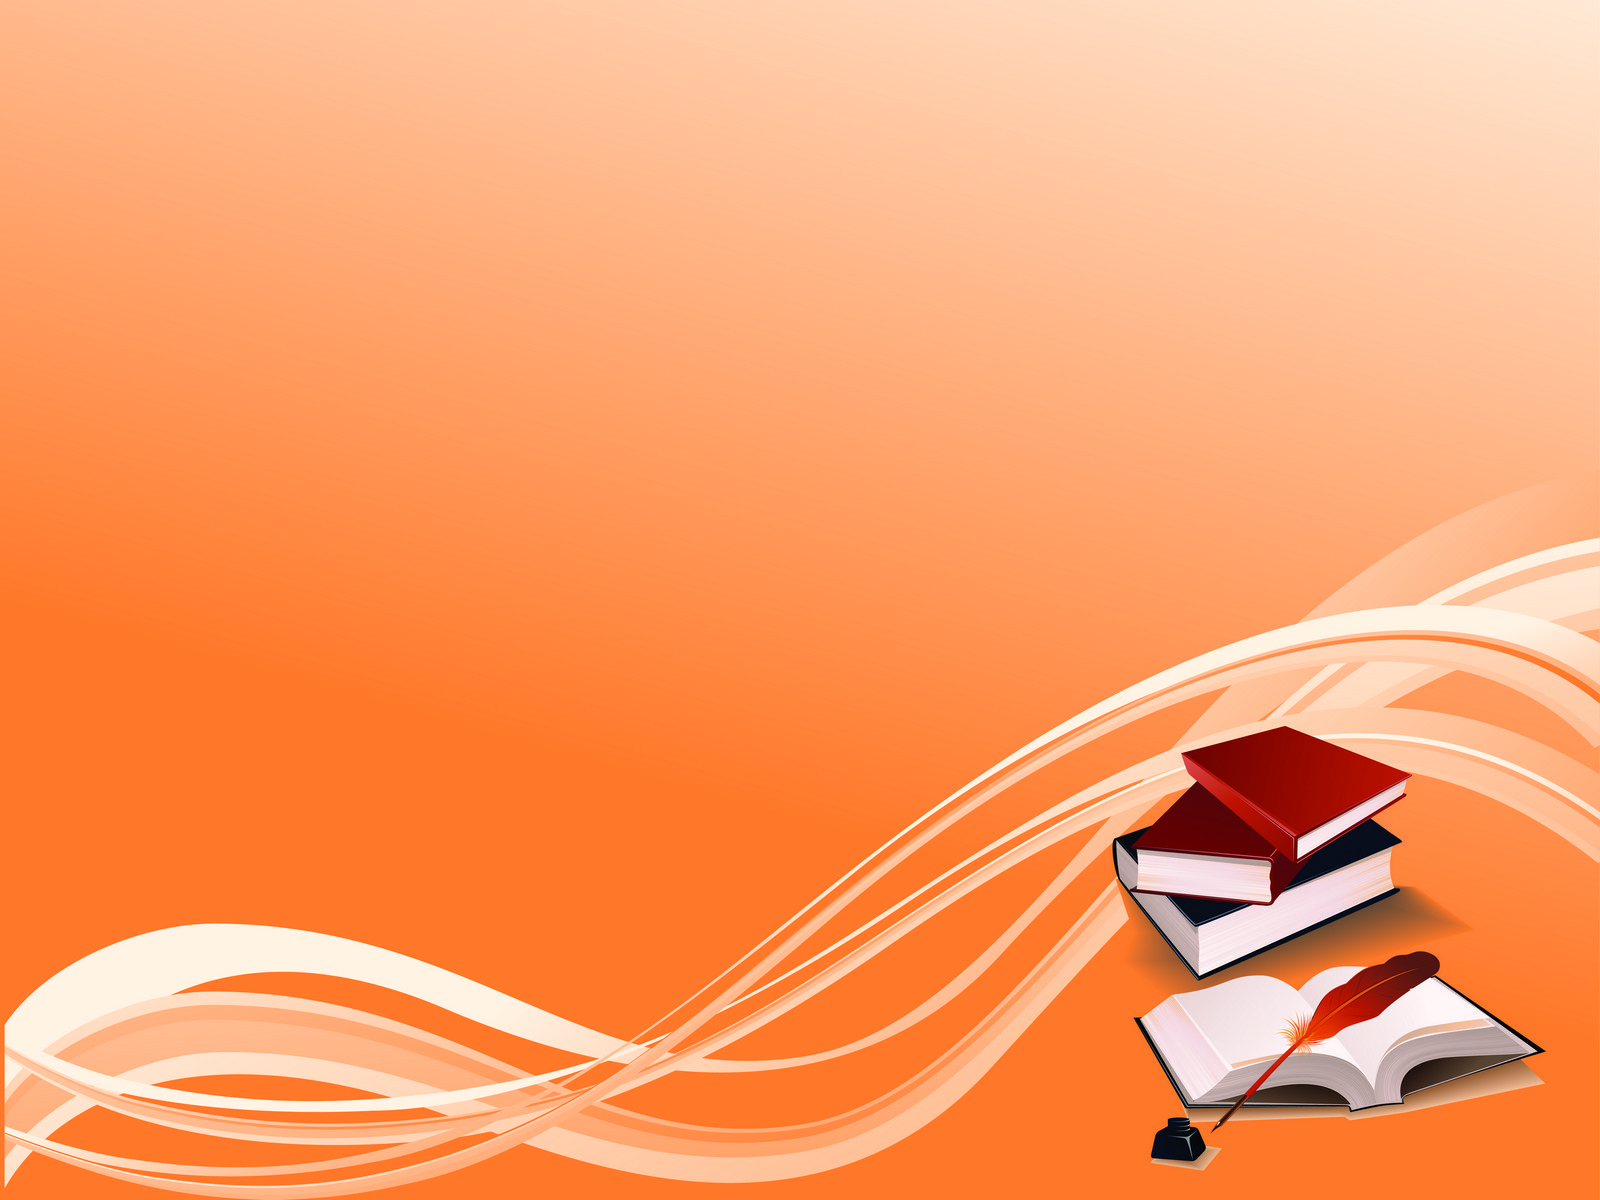 Books On Orange Bg